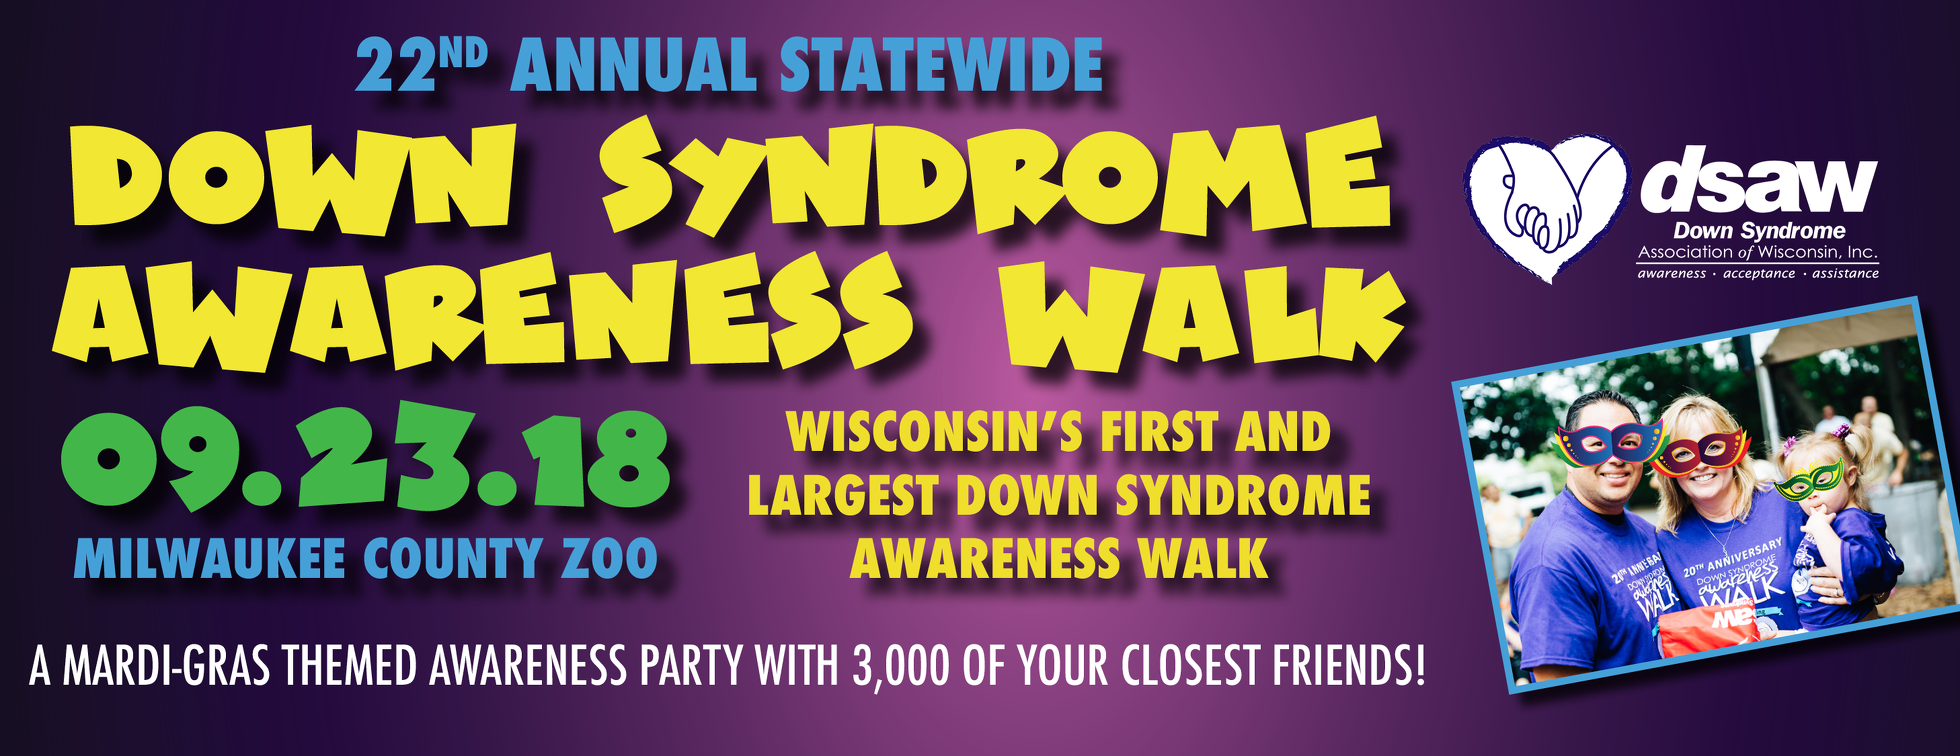 22nd Annual Statewide Down Syndrome Awareness Walk